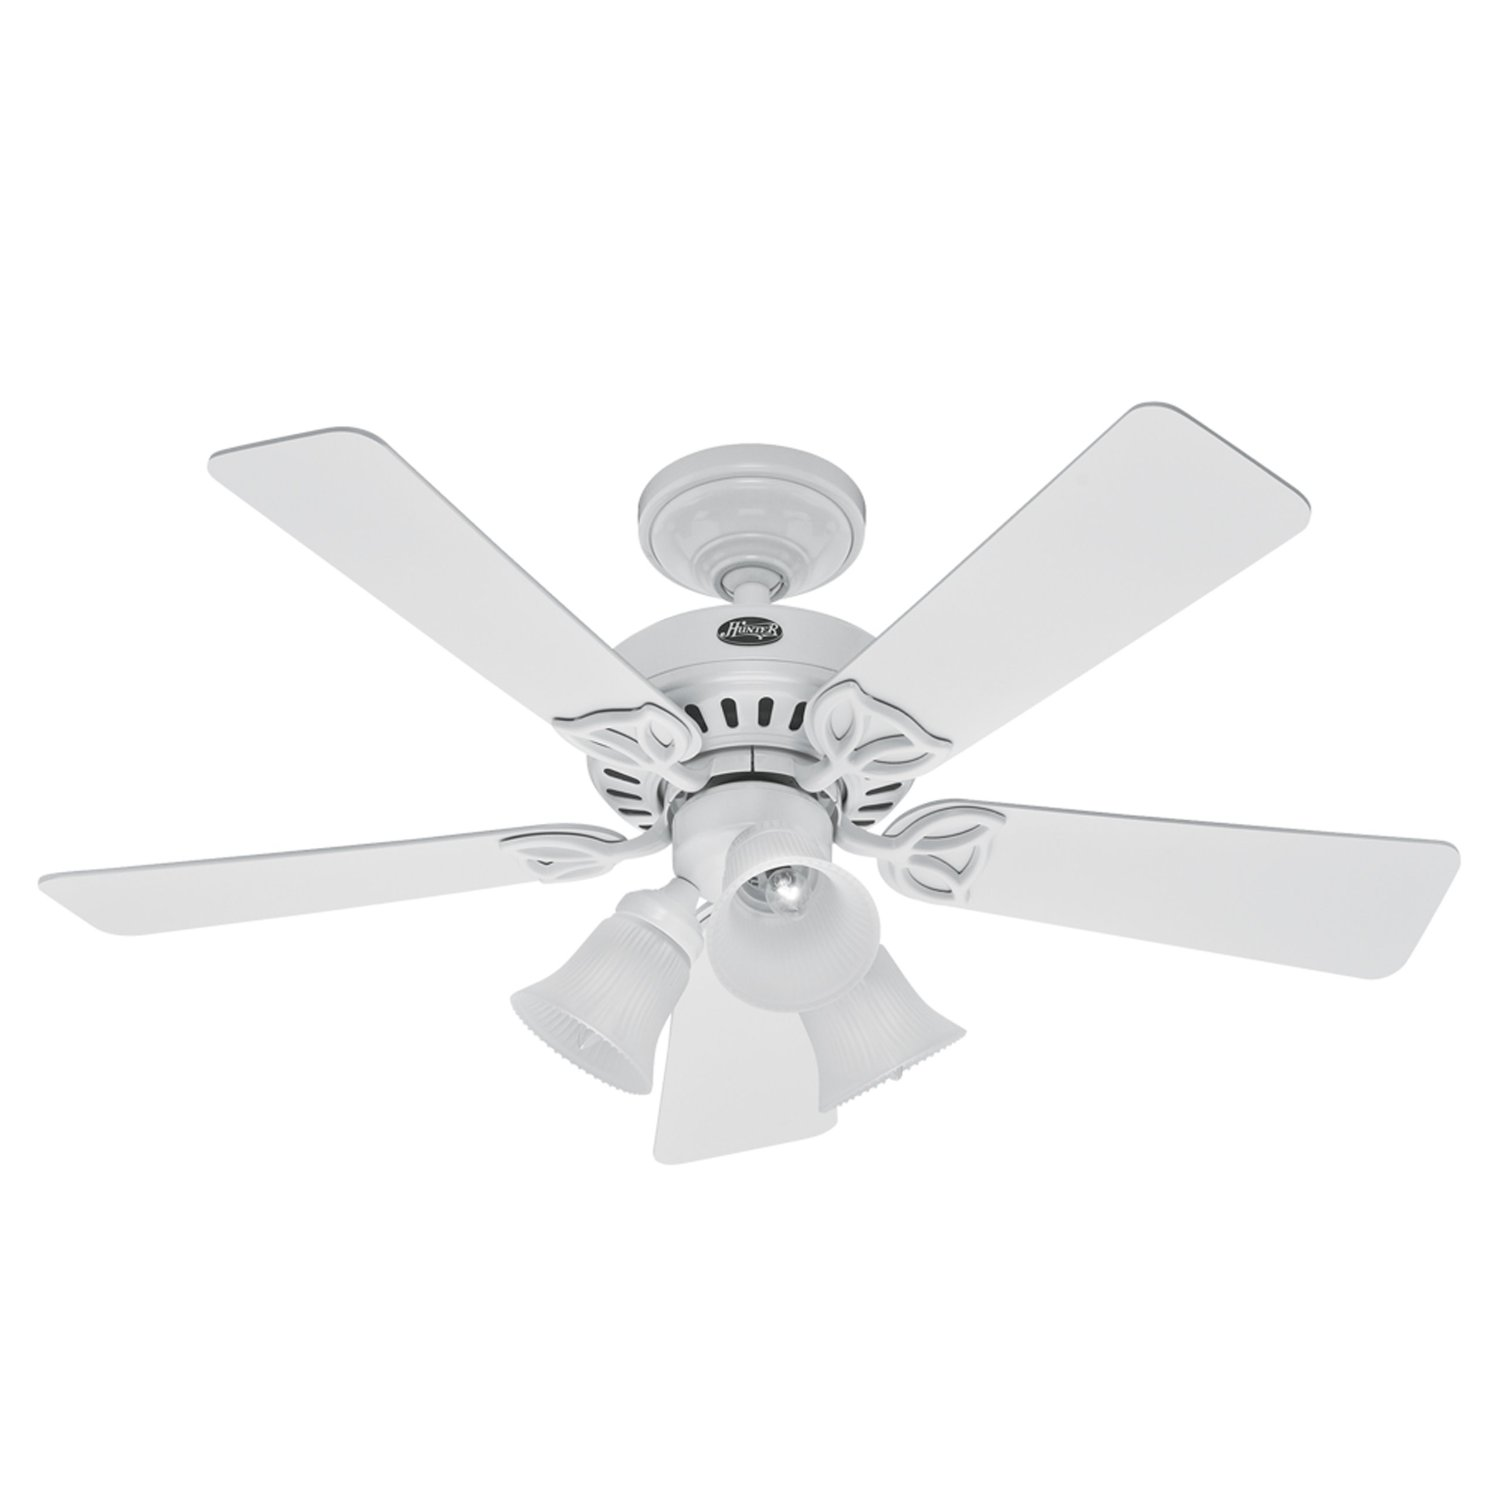 Cheap Hunter Ceiling Fans Light find Hunter Ceiling Fans Light